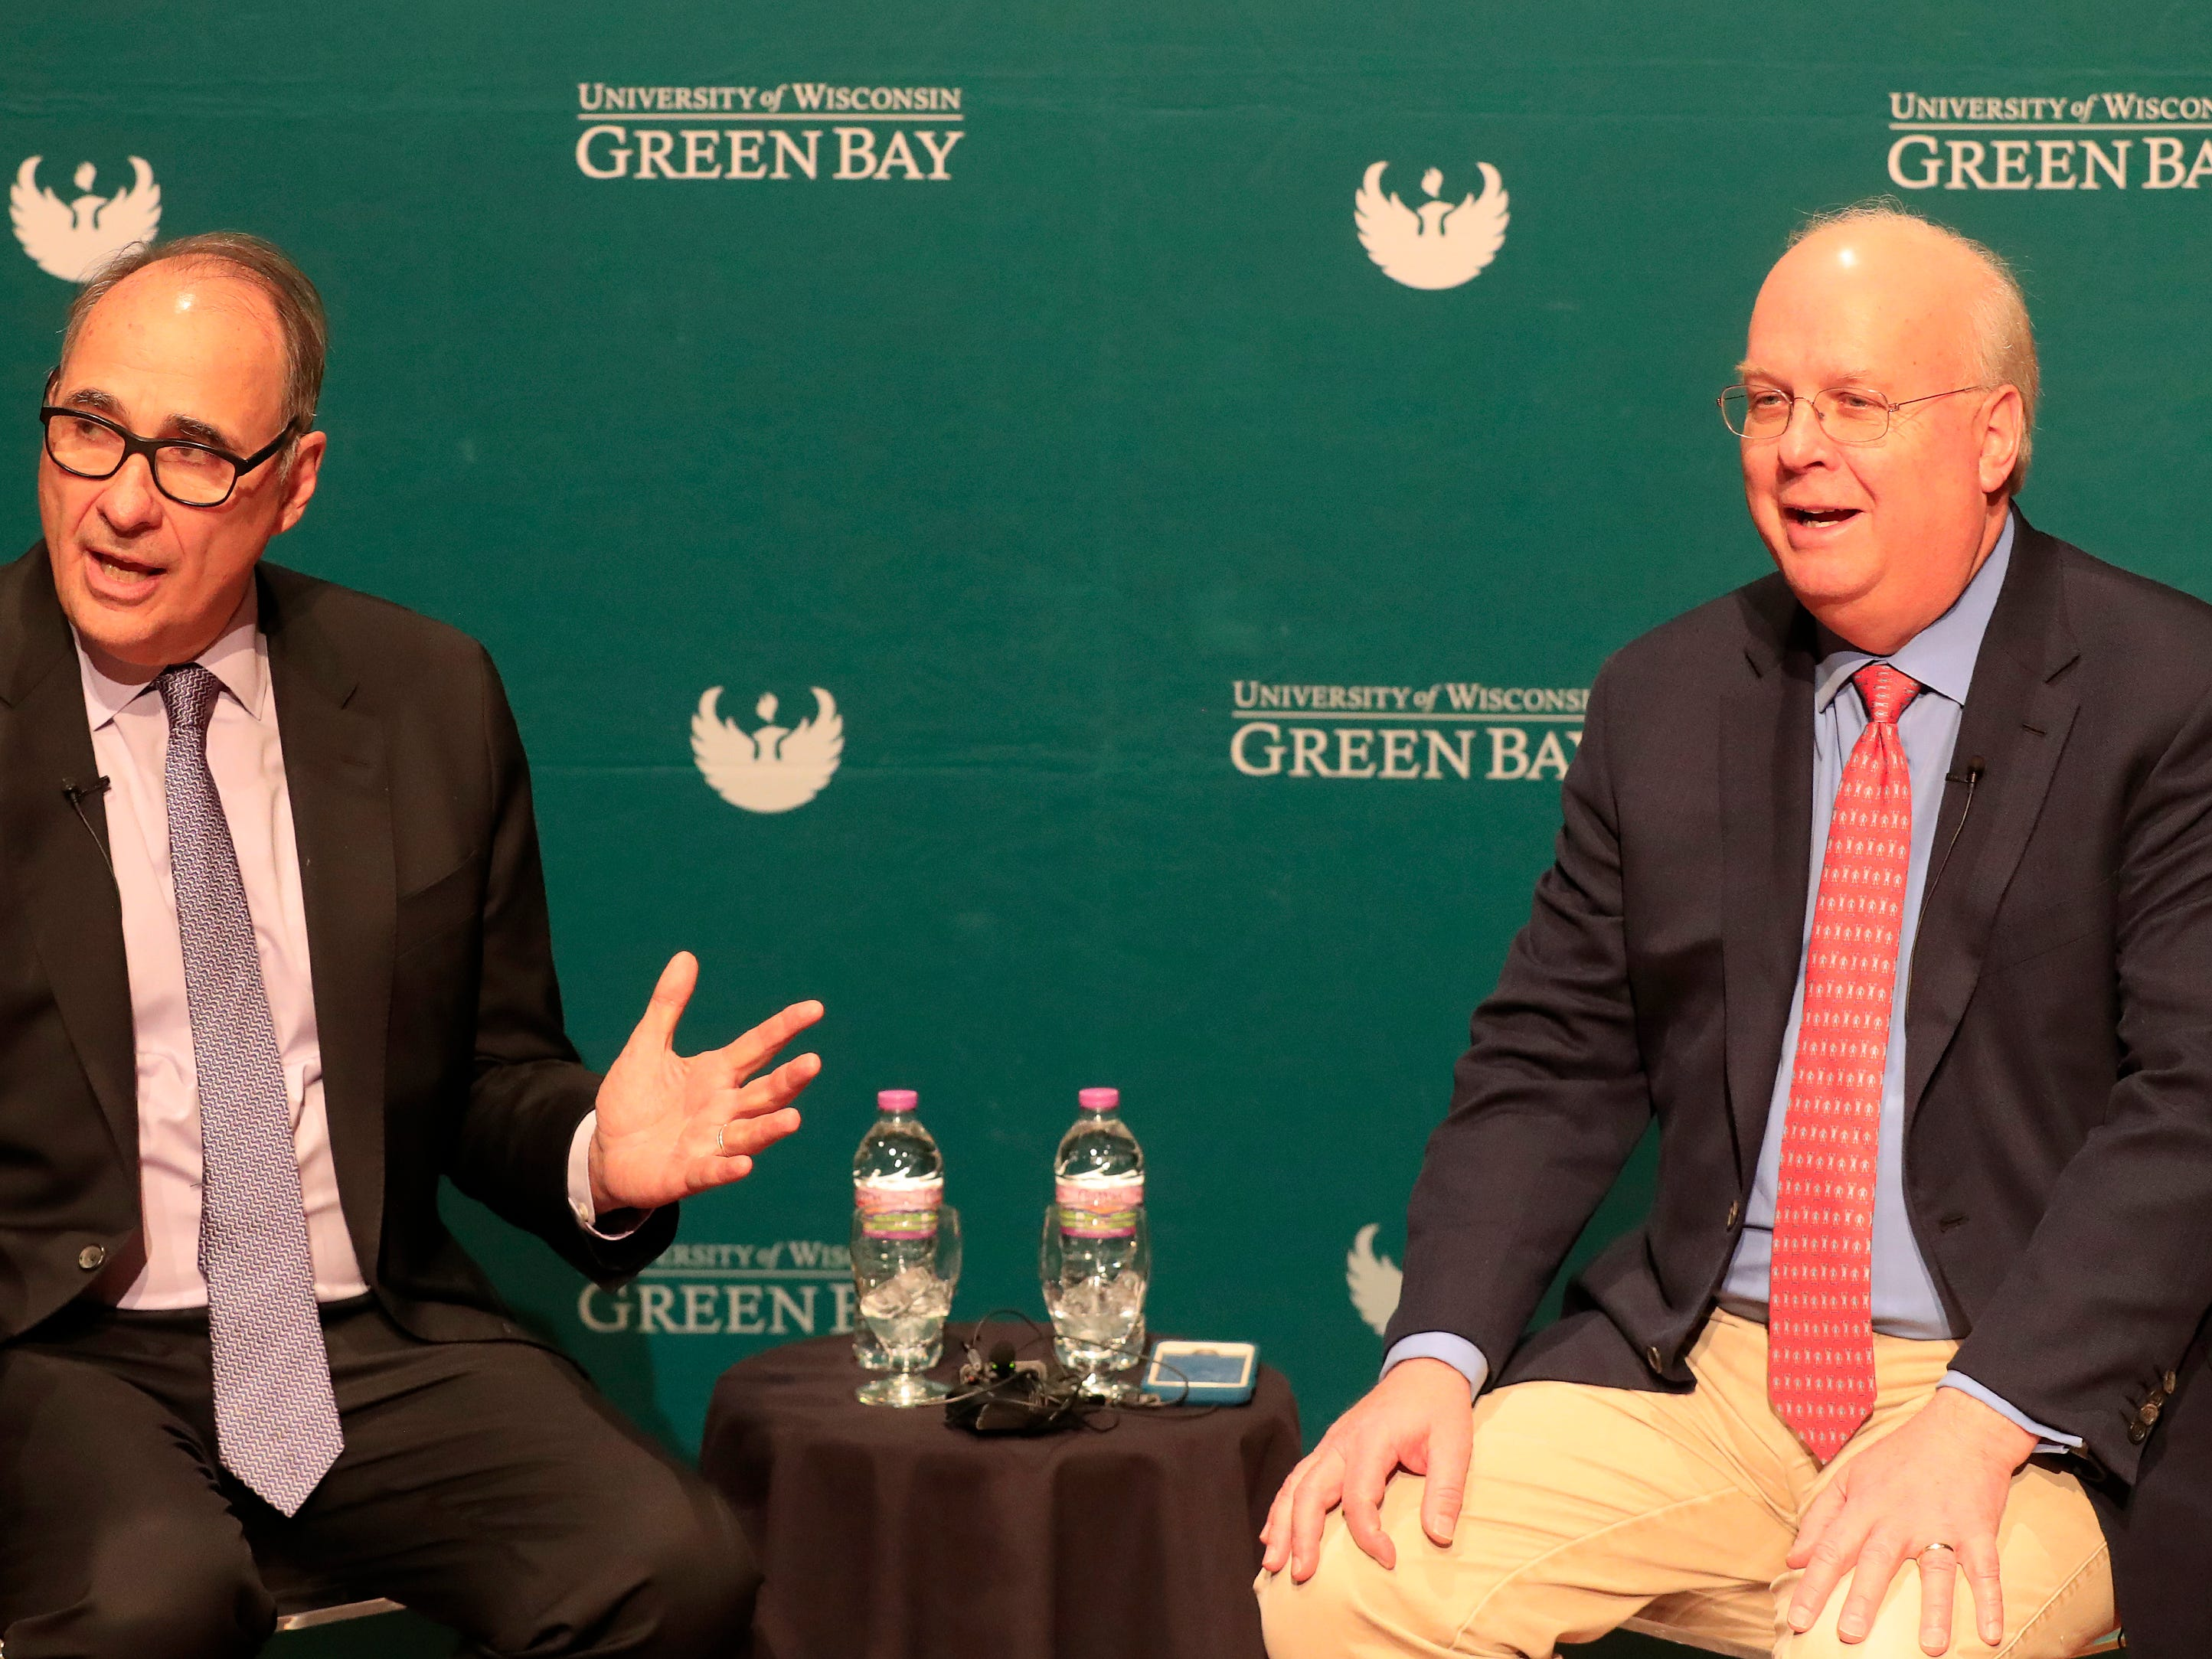 Political consultants David Axelrod (left) and Karl Rove speak to members of the media before their point-counterpoint event at UW-Green Bay on Wednesday, April 3, 2019 in Green Bay, Wis.